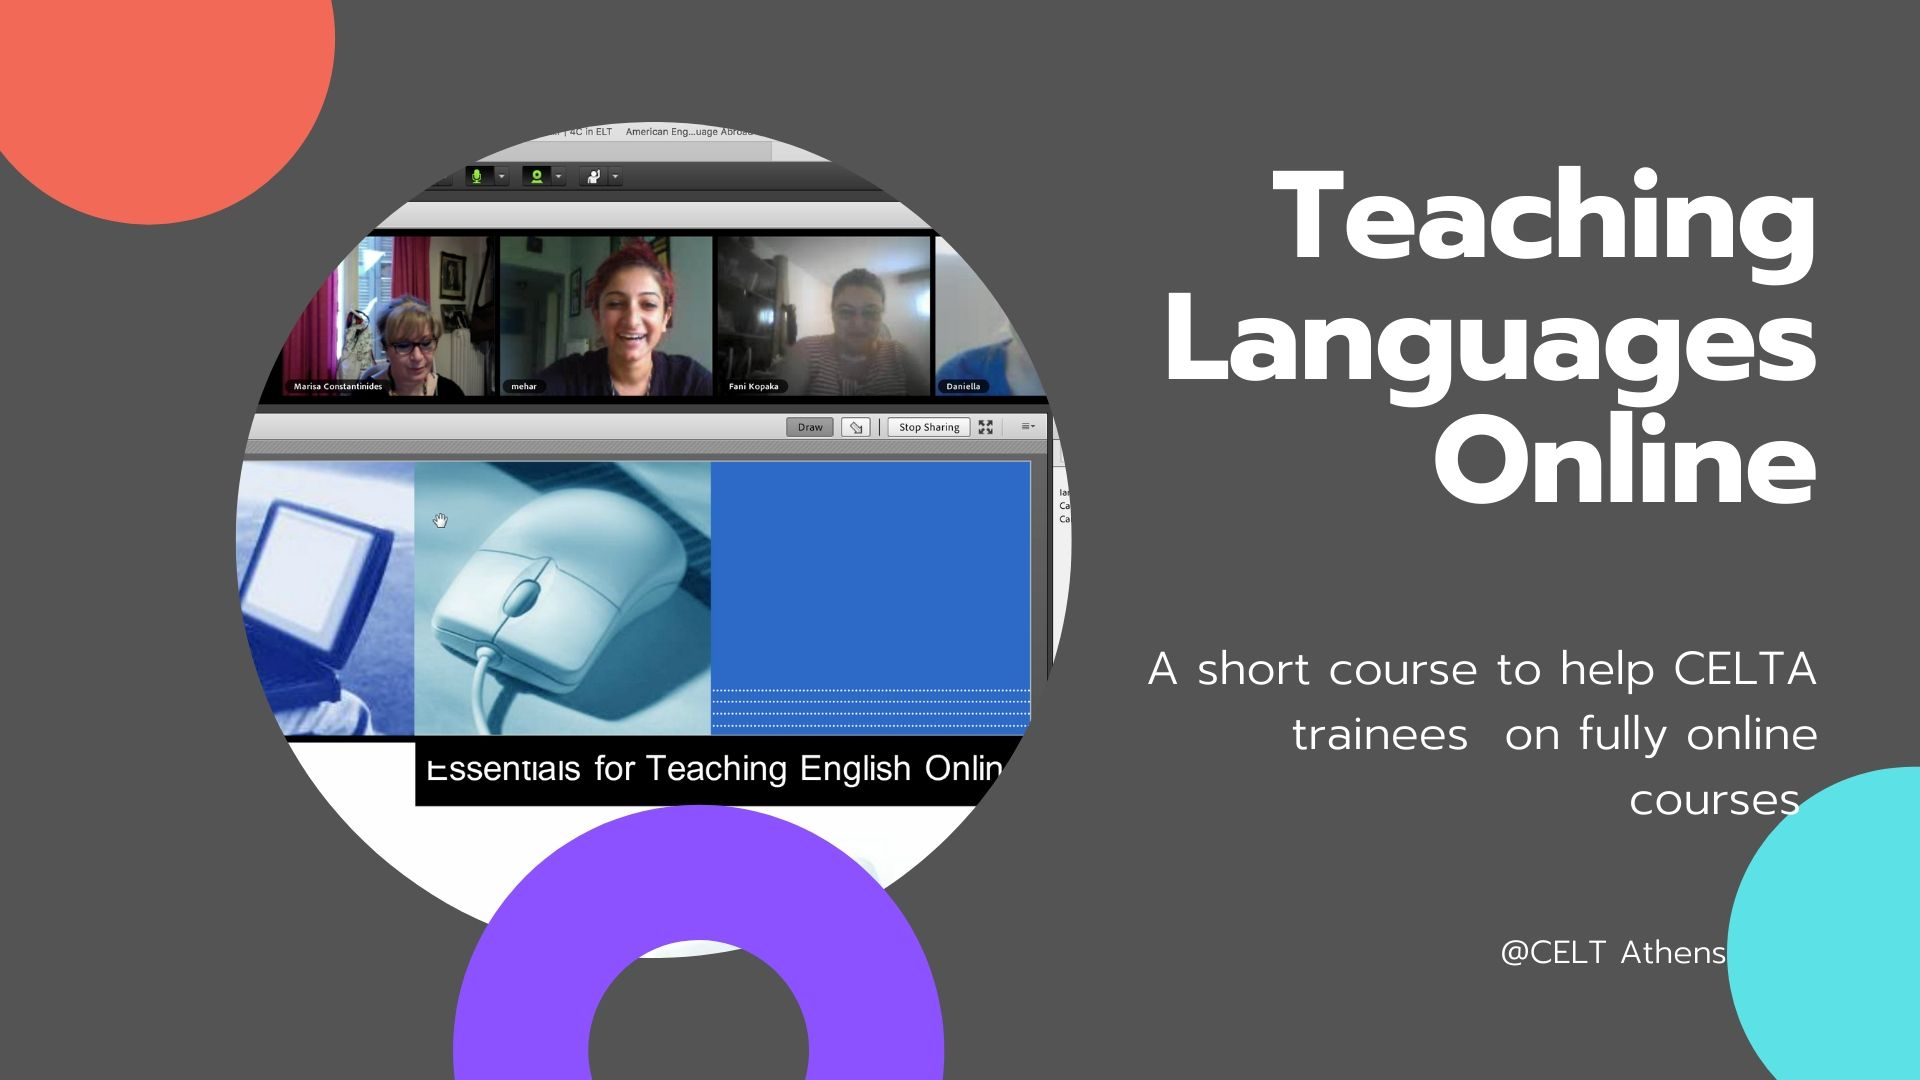 Teaching Languages Online 2